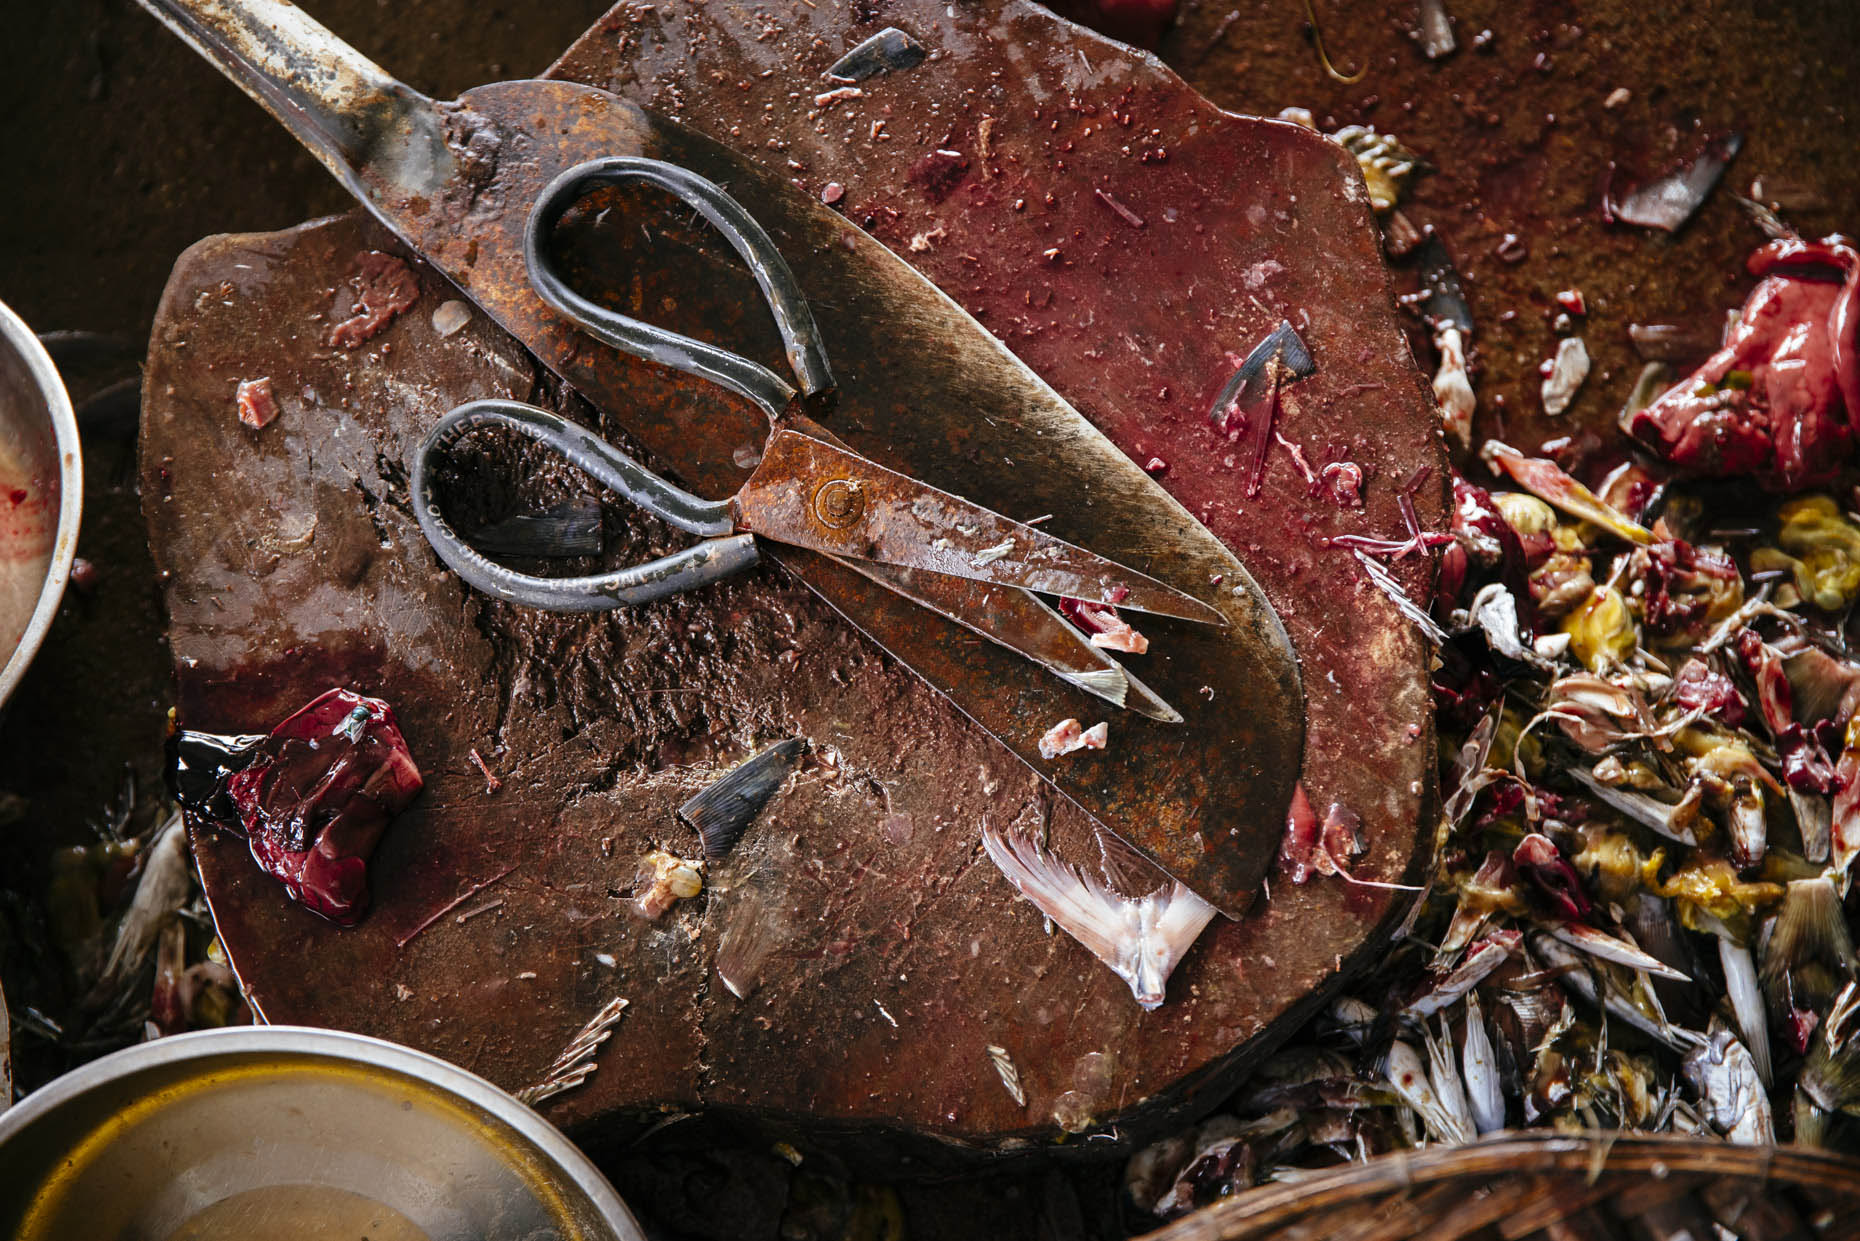 Rusted scissors and knife on block covered in fish blood and guts